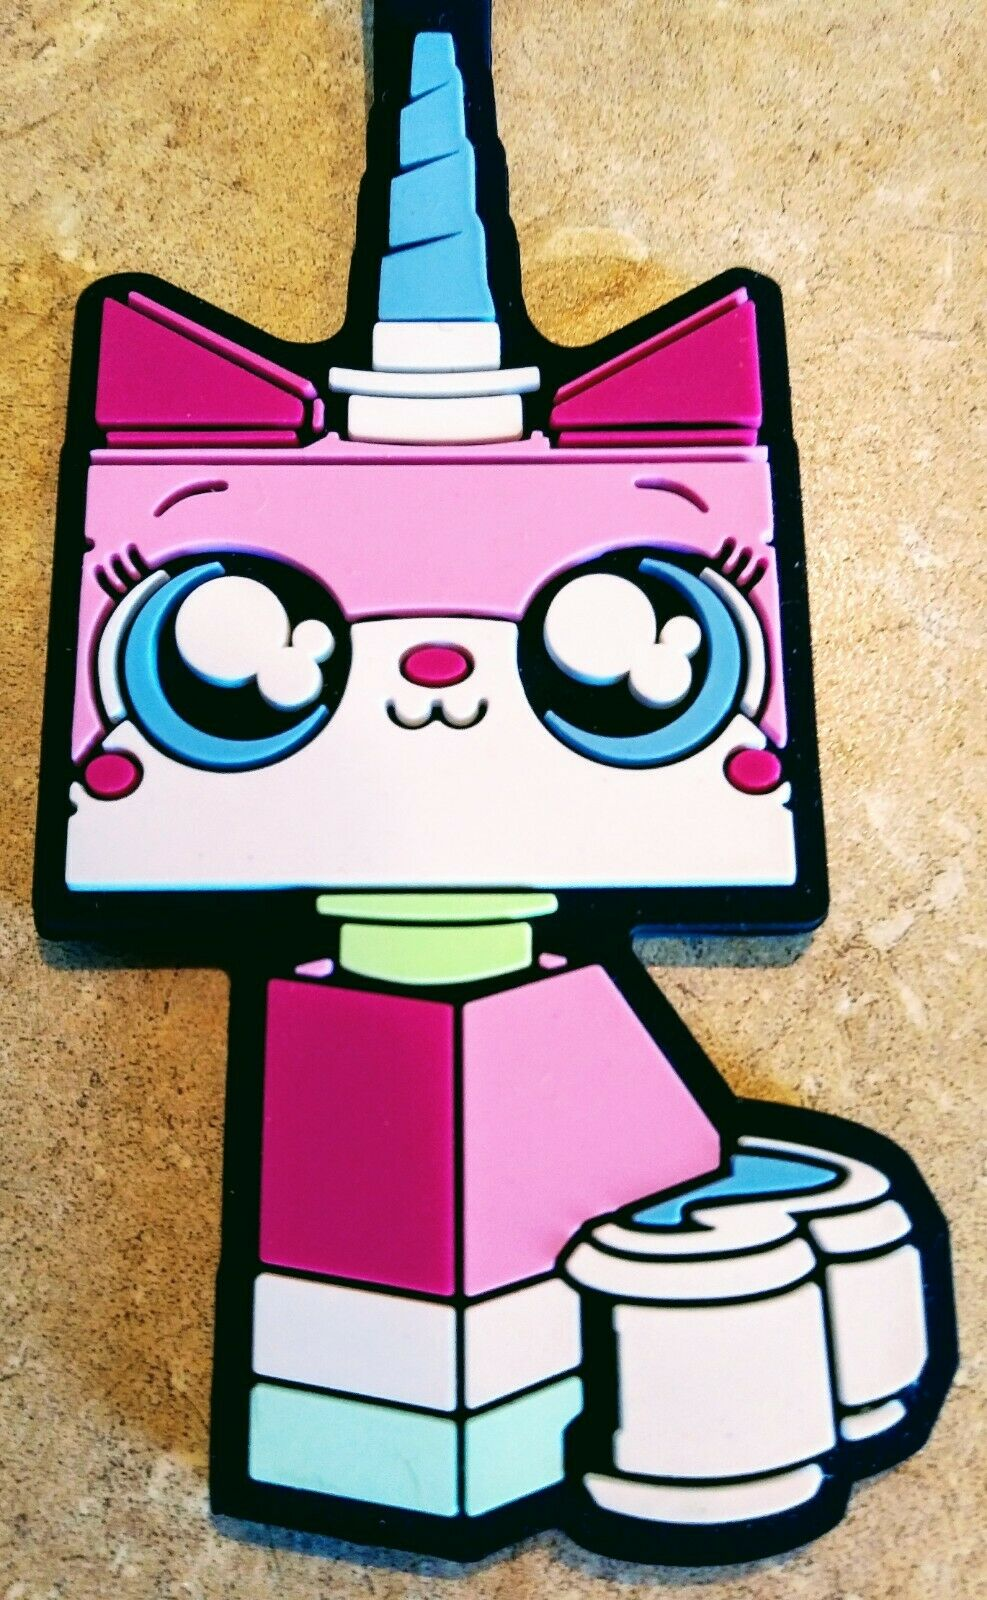 Adorable Unikitty Rose Licorne Chat Film Lego 2 bagages Sac Tag figurine forme